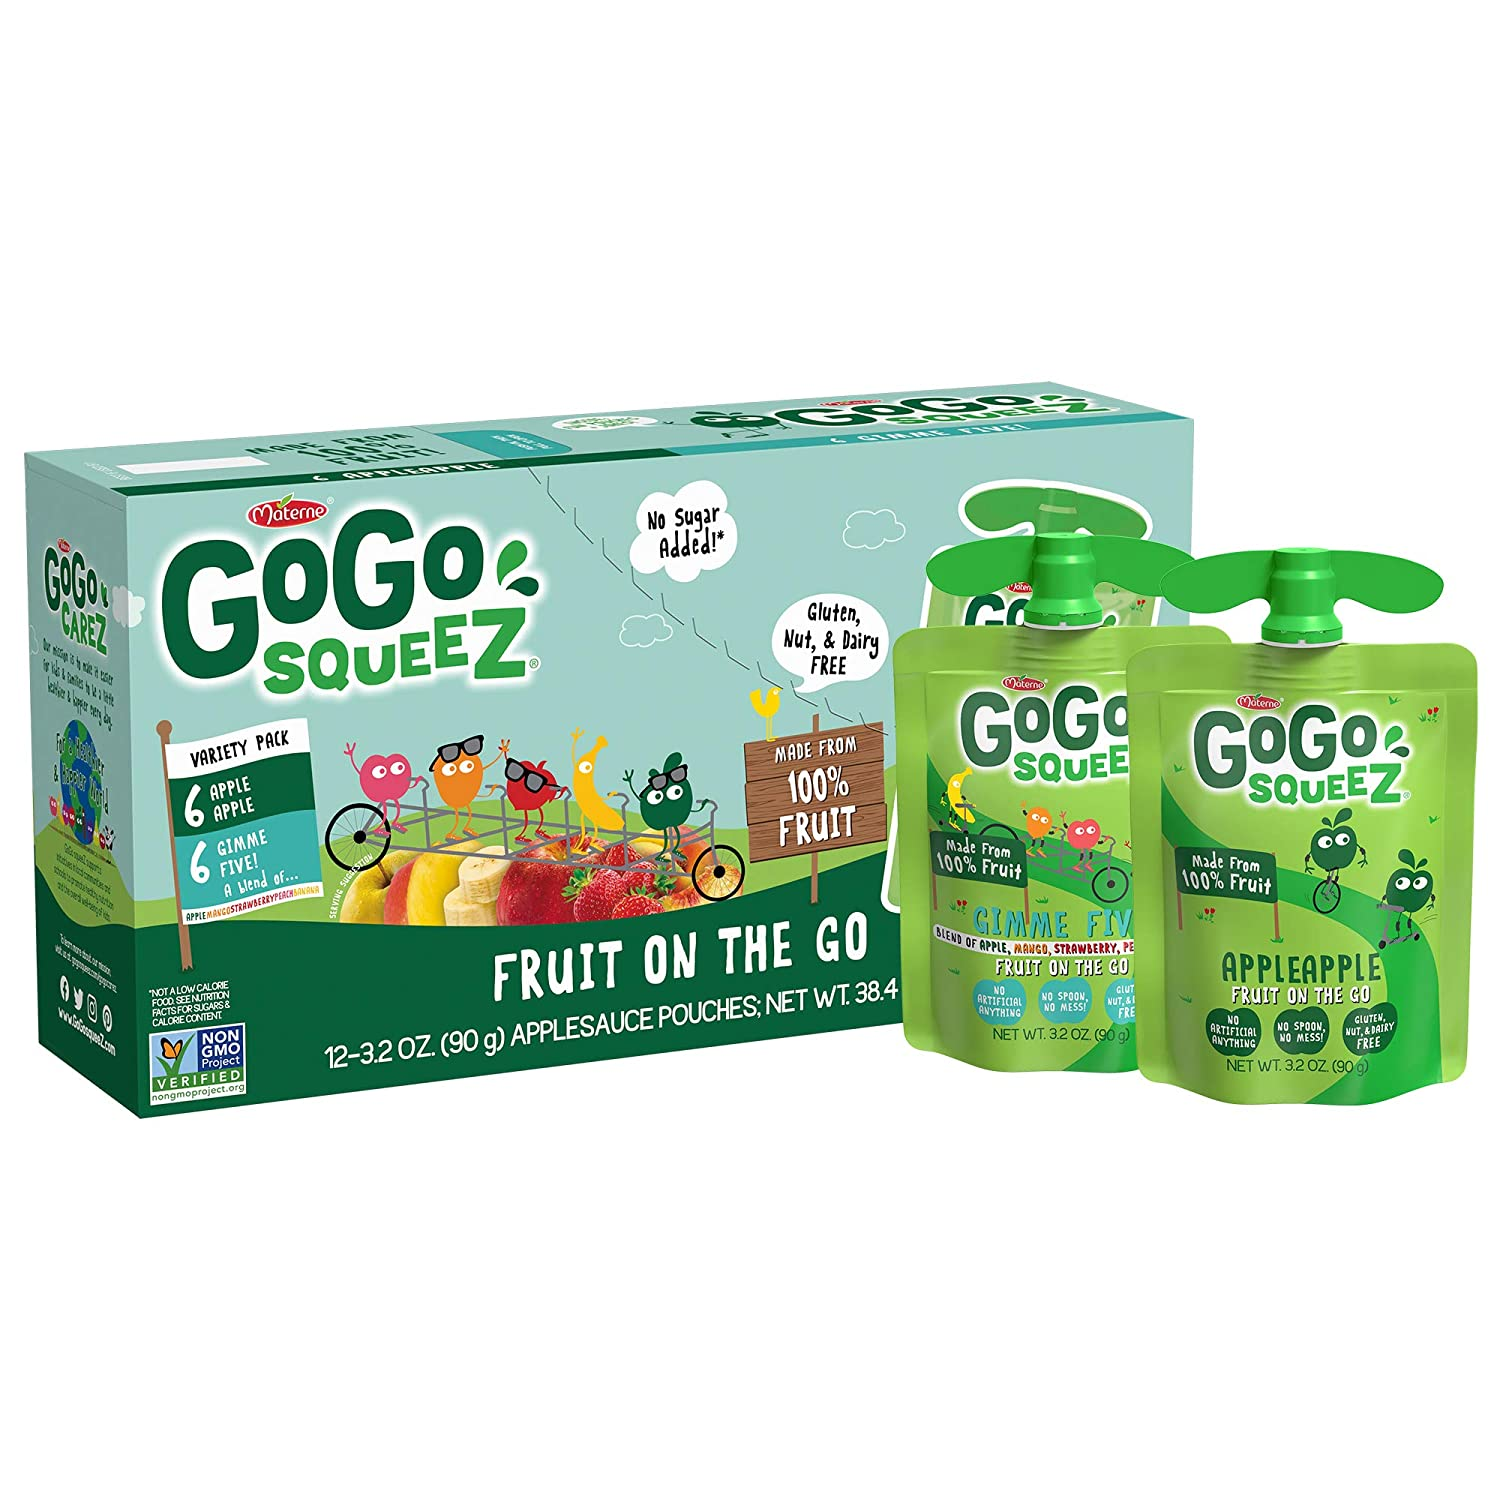 GoGo squeeZ Applesauce, Variety Pack (Apple/Gimme 5), 3.2 Ounce (12 Pouches), Gluten Free, Vegan Friendly, Unsweetened Applesauce, Recloseable, BPA Free Pouches